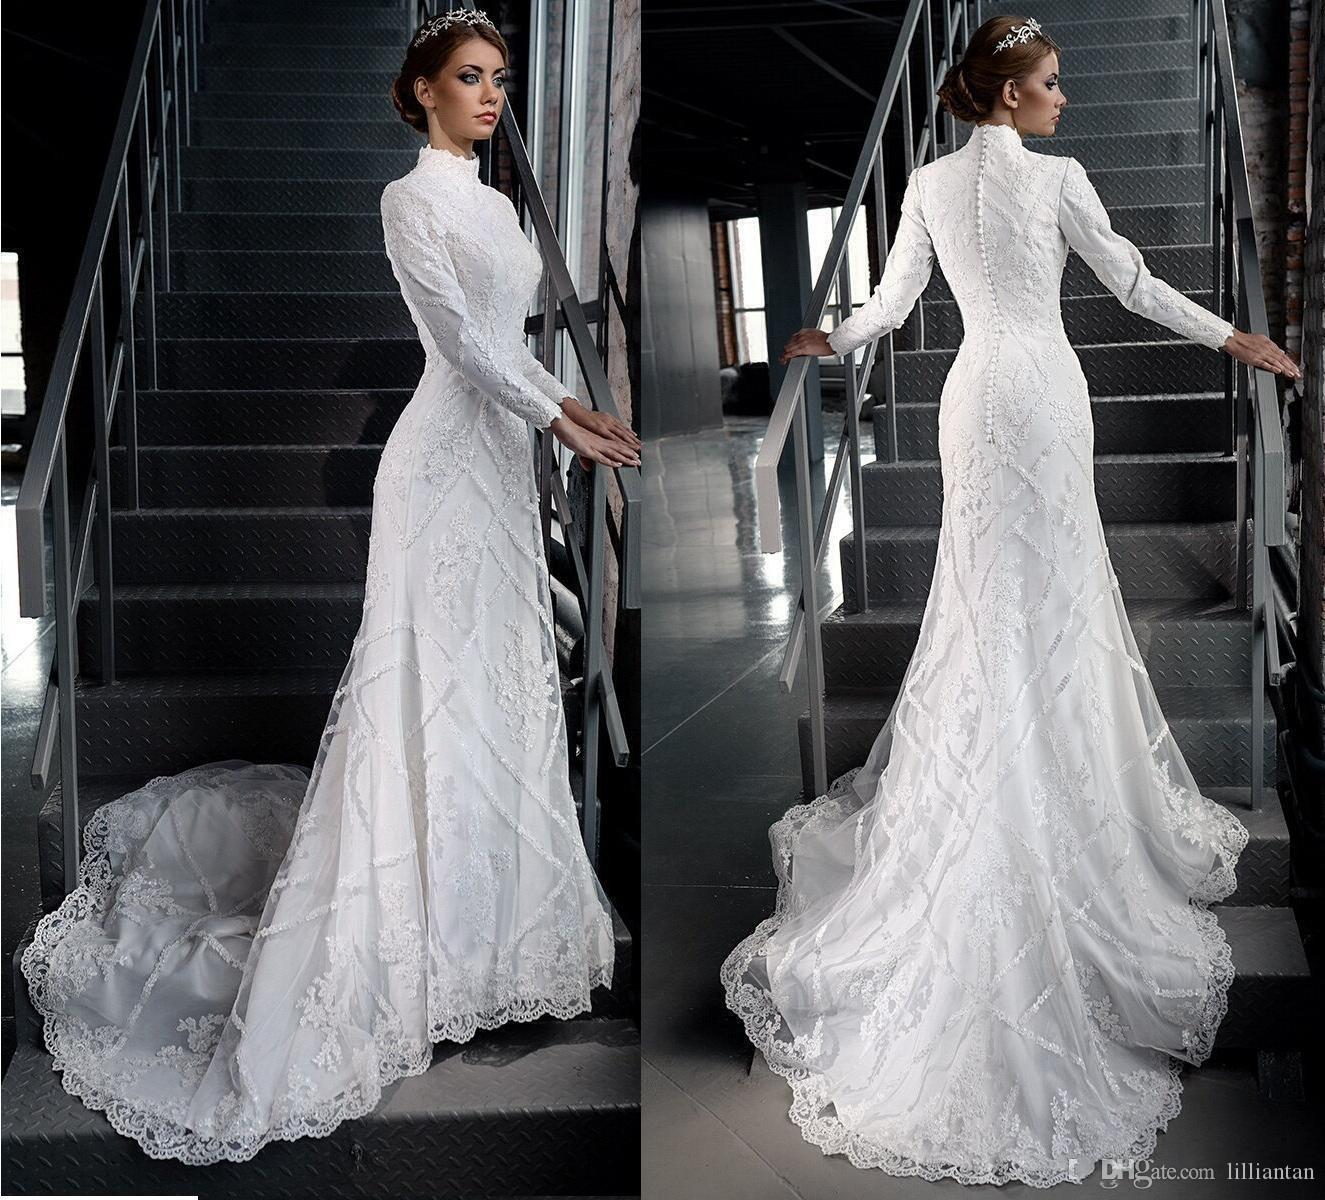 Discount Vintage Modest Lace Wedding Dresses Long Sleeve Tradional Catholic Christian Gown Muslim Dubai Arabic Bridal Appliques Real Image: New Old Wedding Dresses At Reisefeber.org